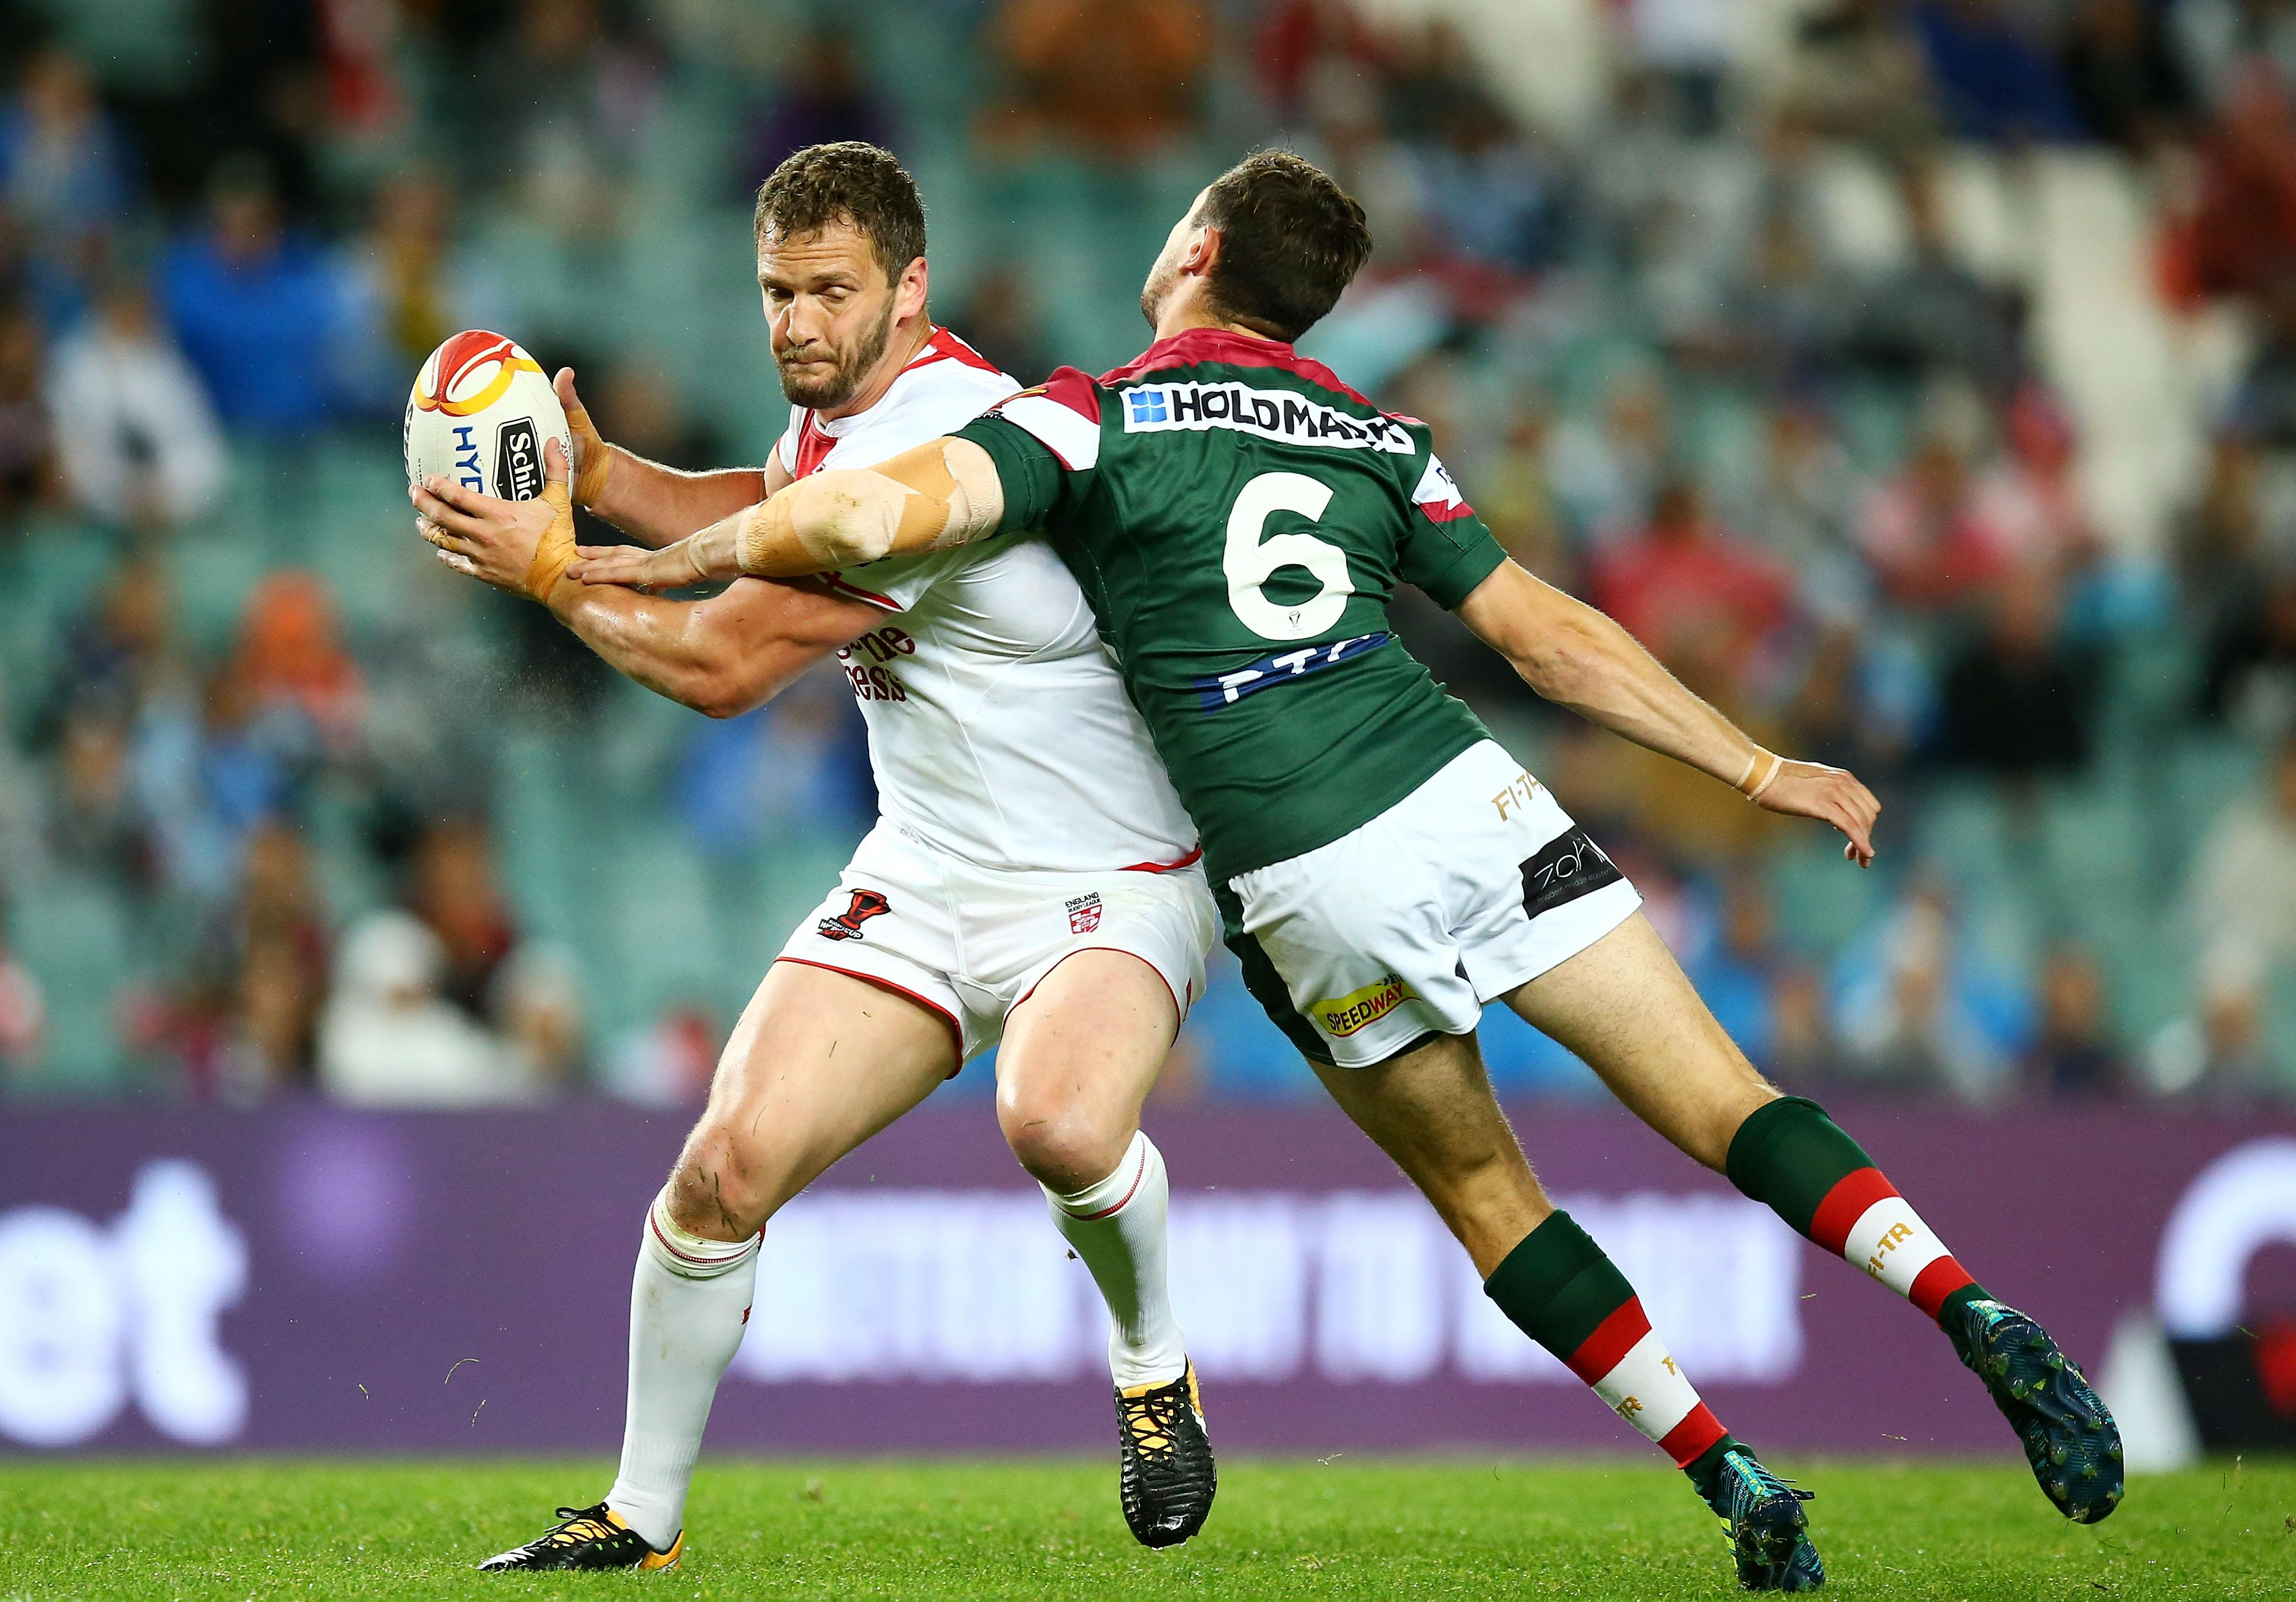 O'Loughlin will lead England out at Denver